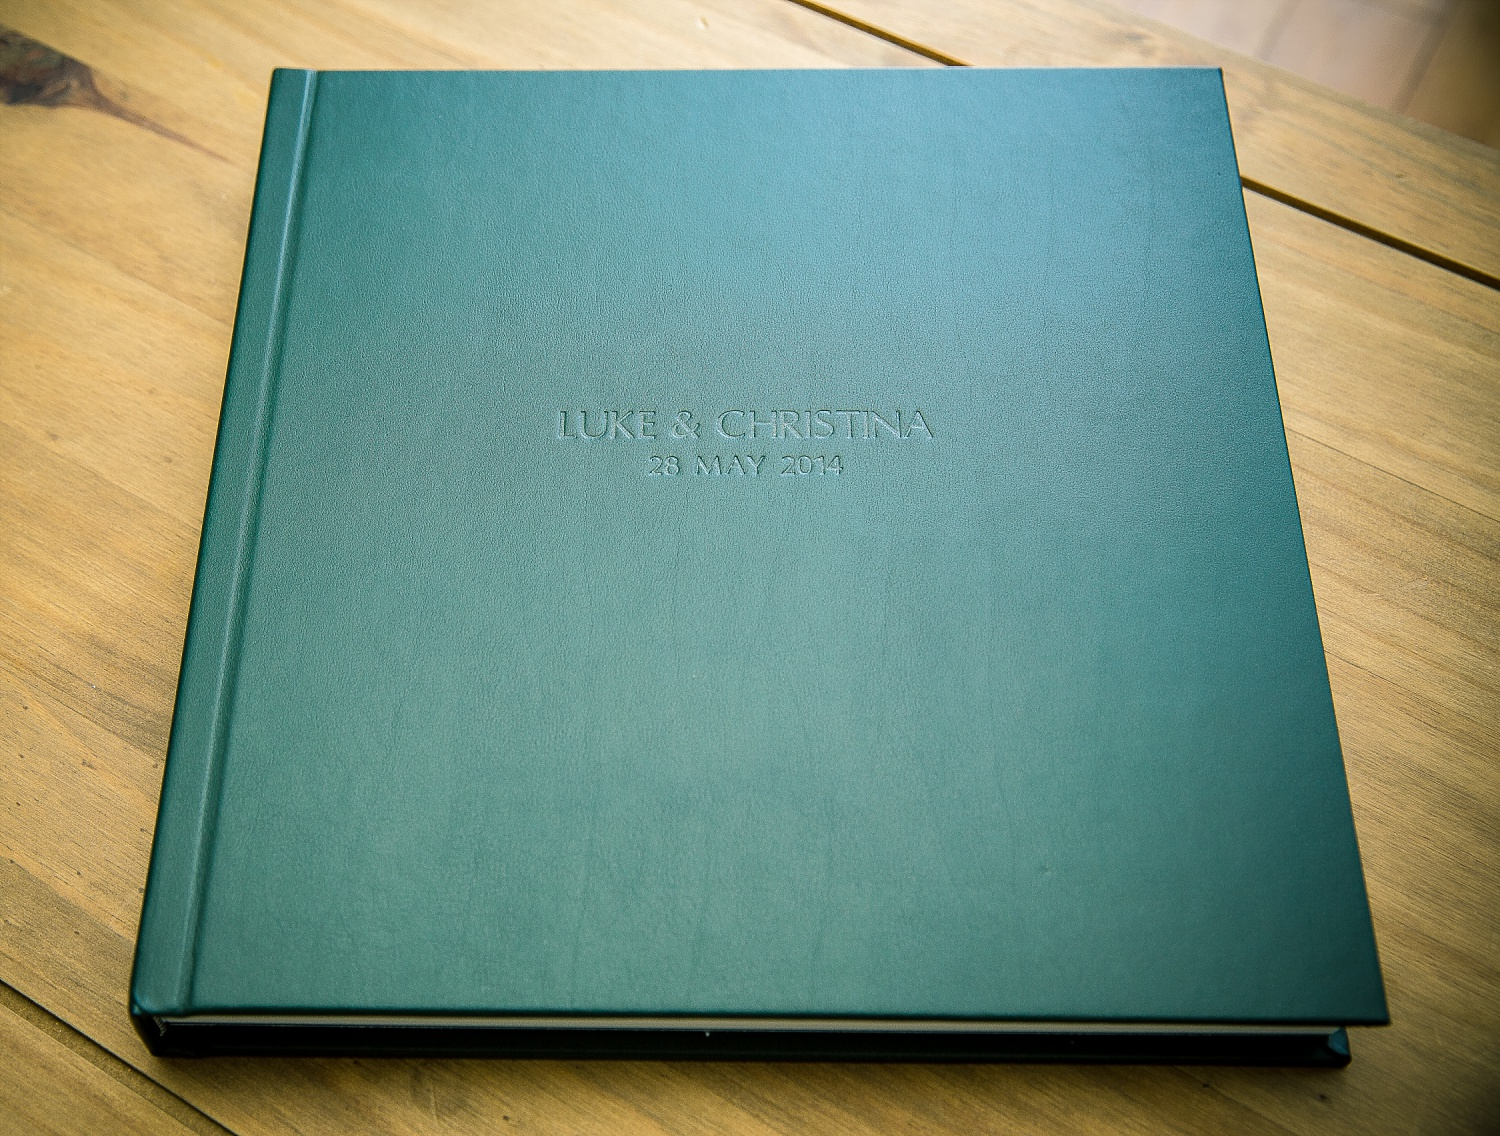 Green leather album cover with blind embossing